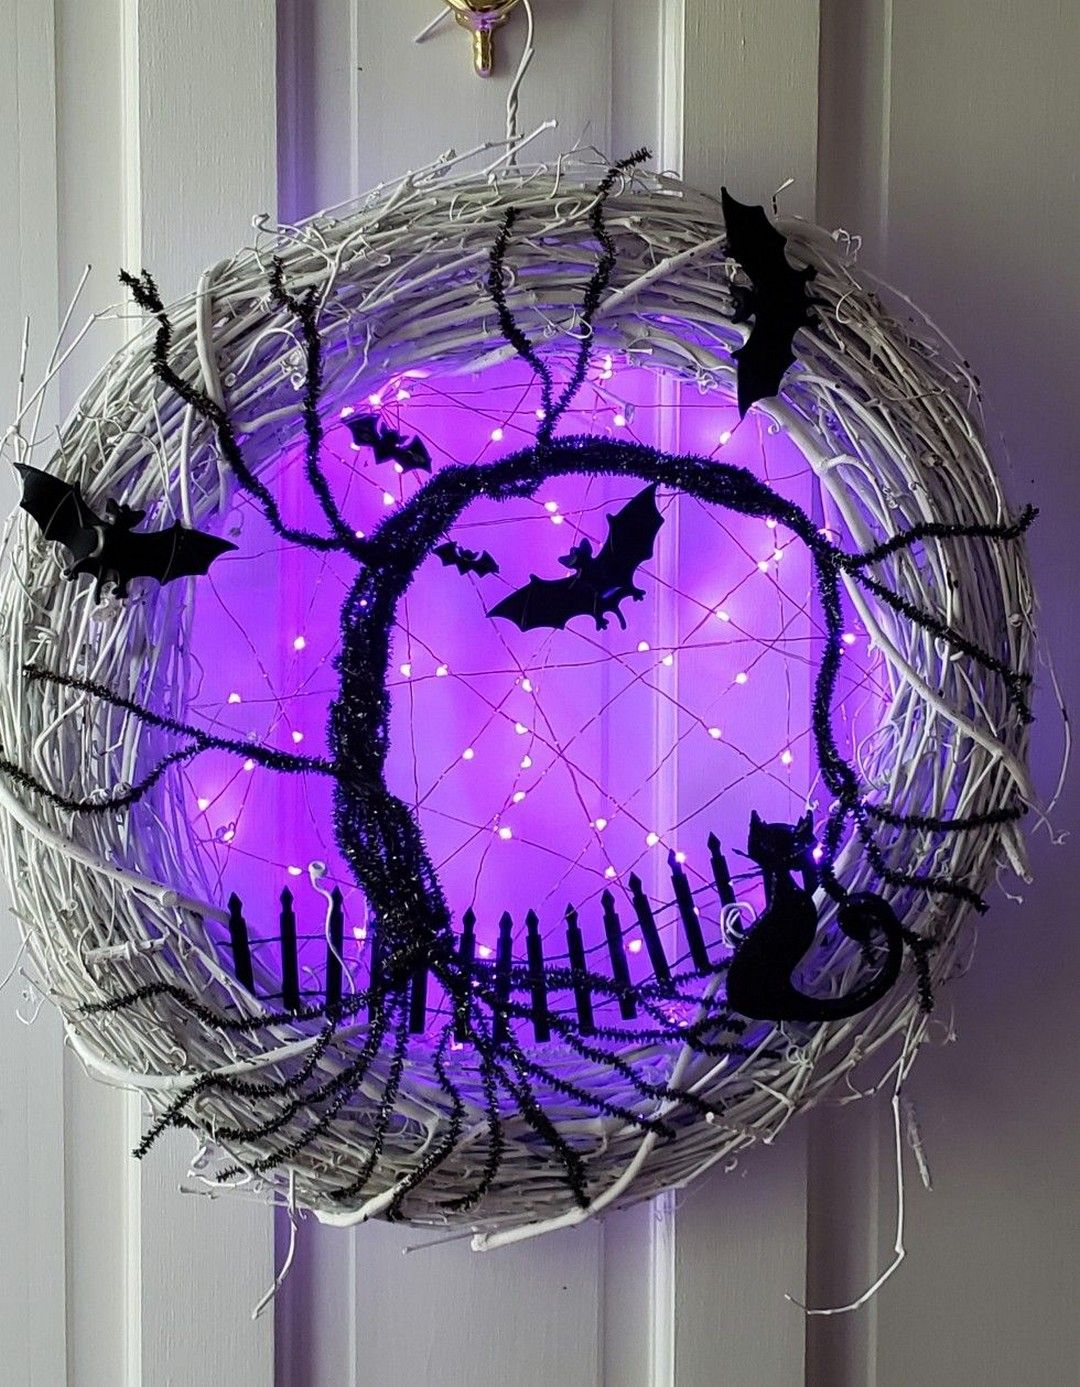 29 Extraordinary Creative DIY Halloween Decorations That Will Surprise